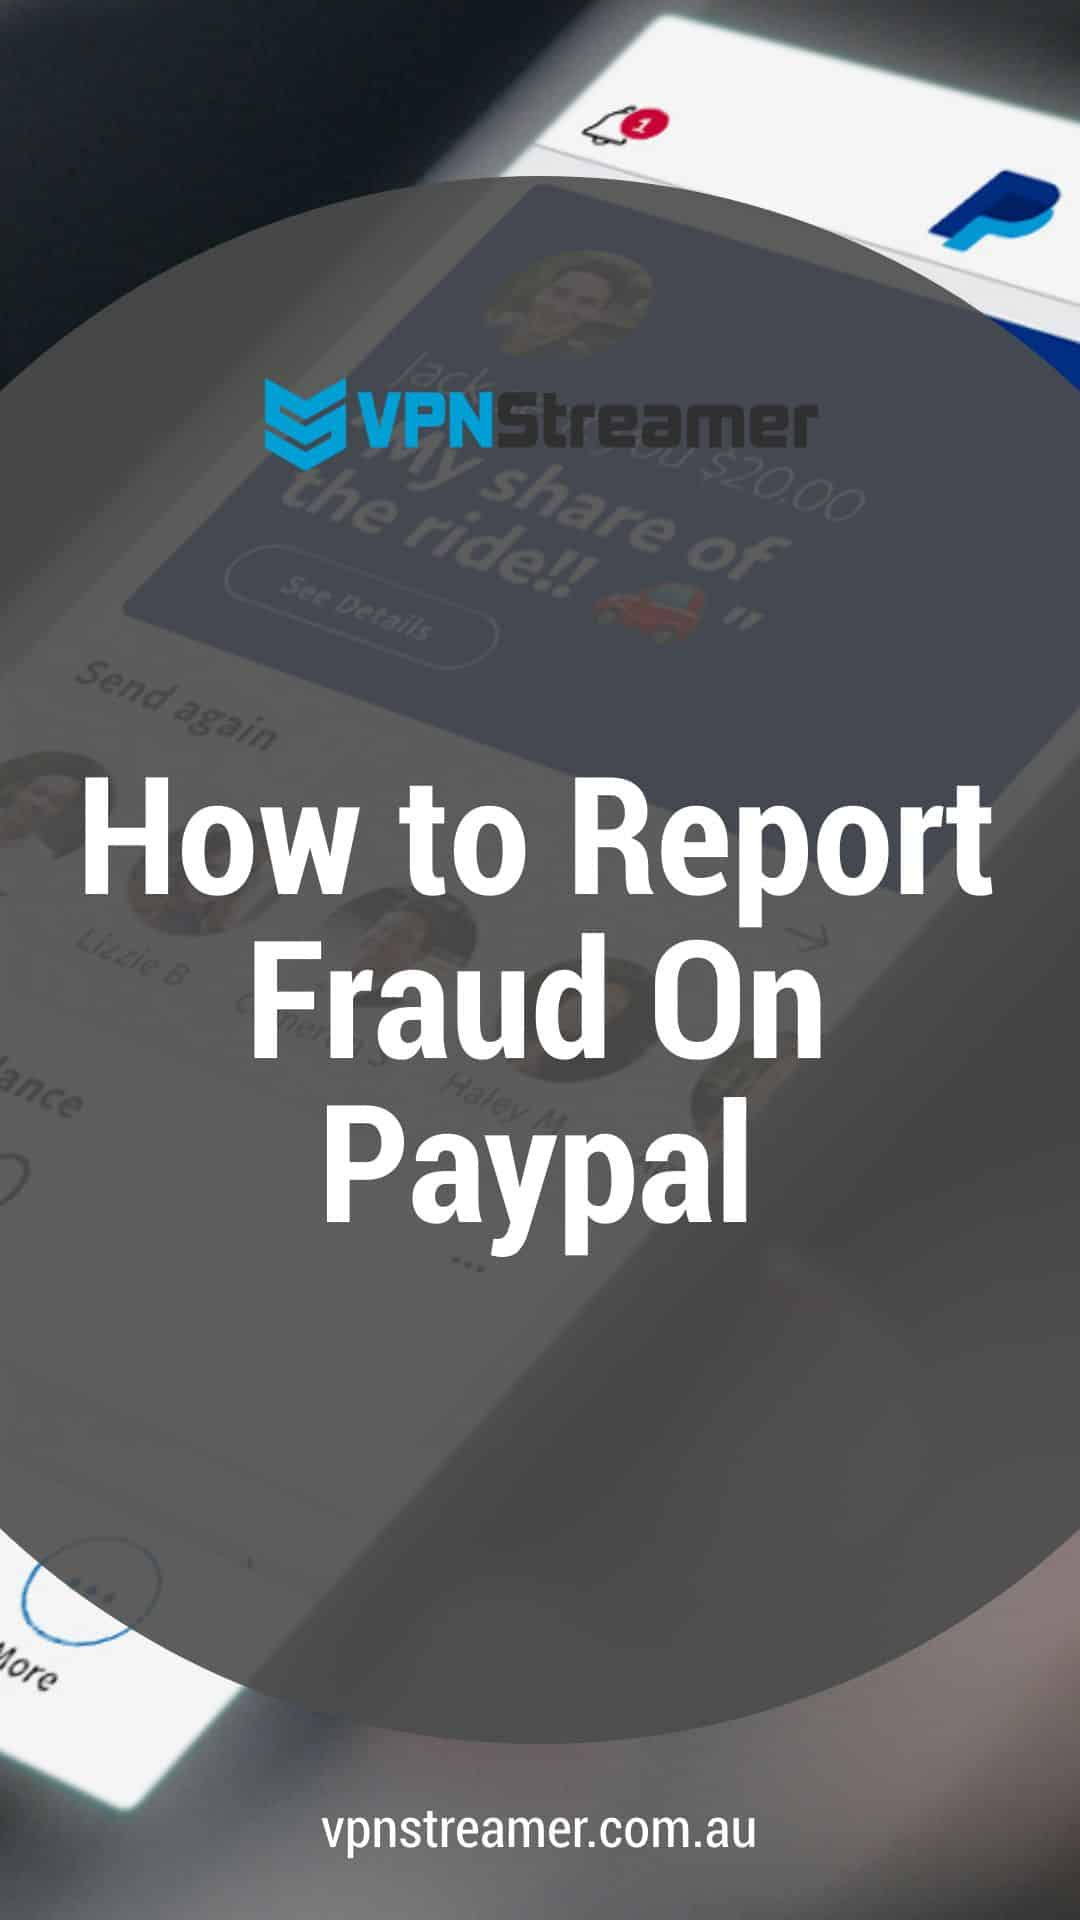 How to Report Fraud On Paypal